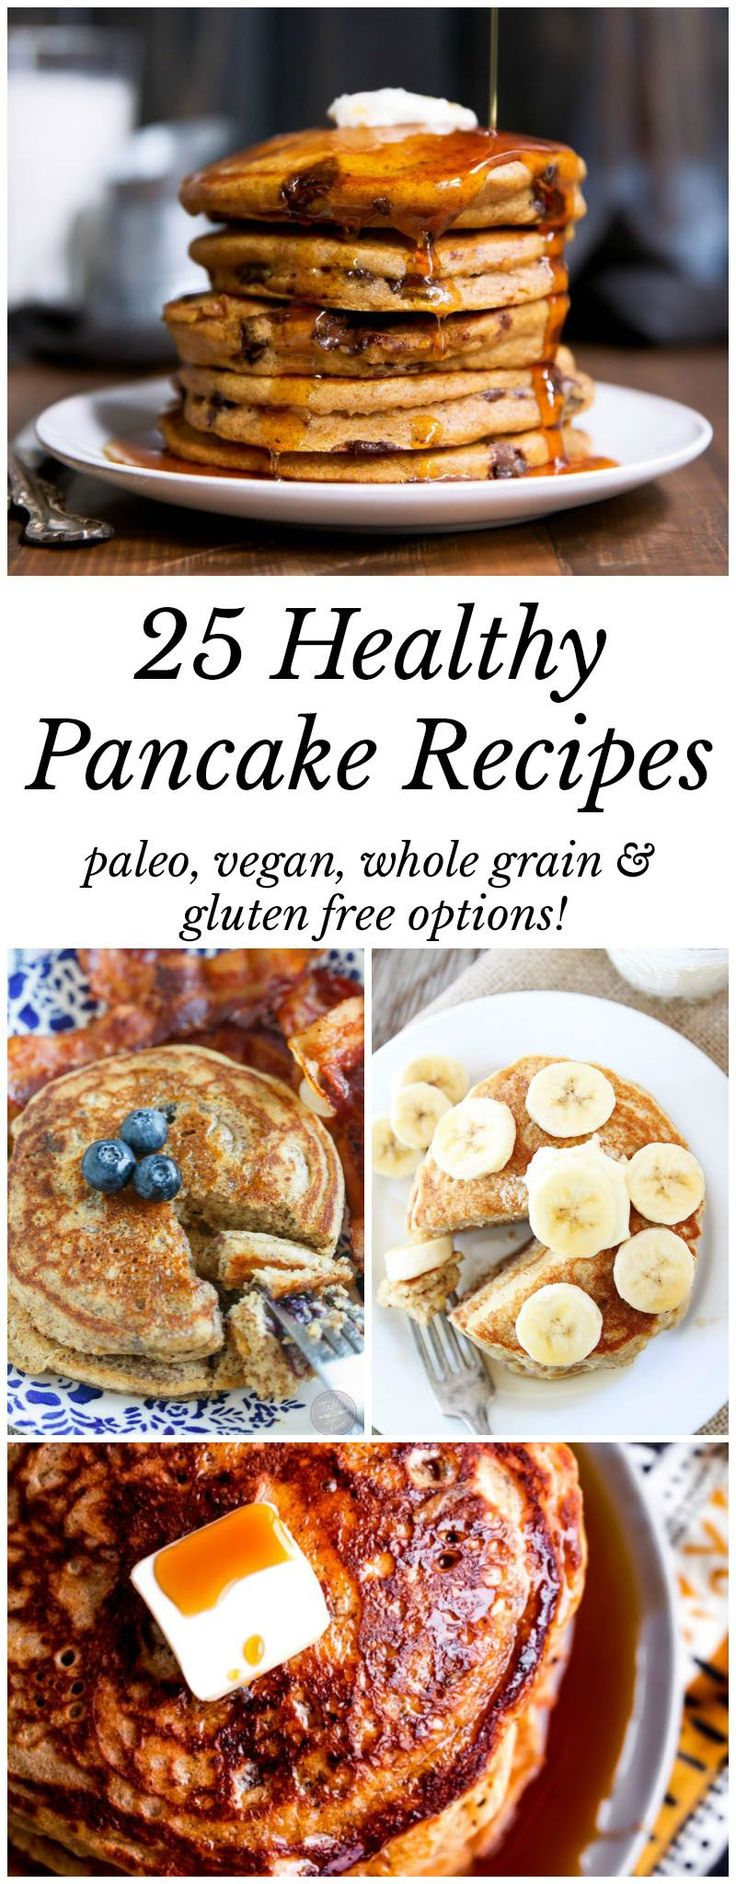 It's time to breakfast the best way we know how: With a stack of (healthy) pancakes recipes!!!